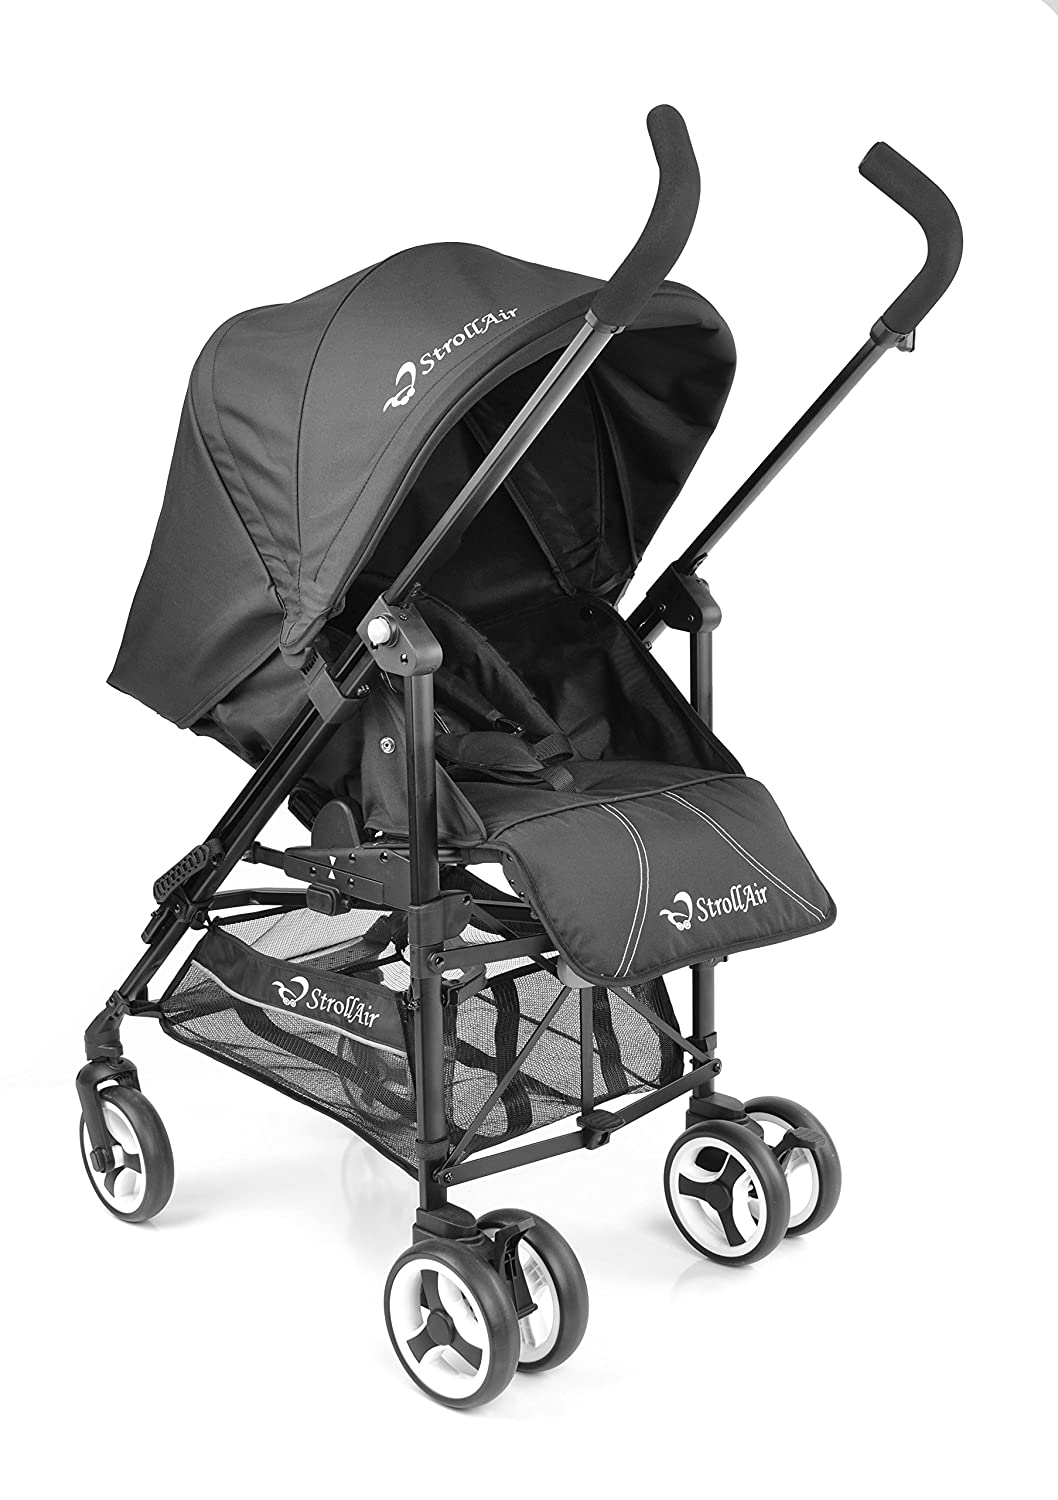 StrollAir ReVu Best Reversible Travel System Umbrella Stroller - Lightweight UV50 (Black) StrollAir Inc. SU55577B